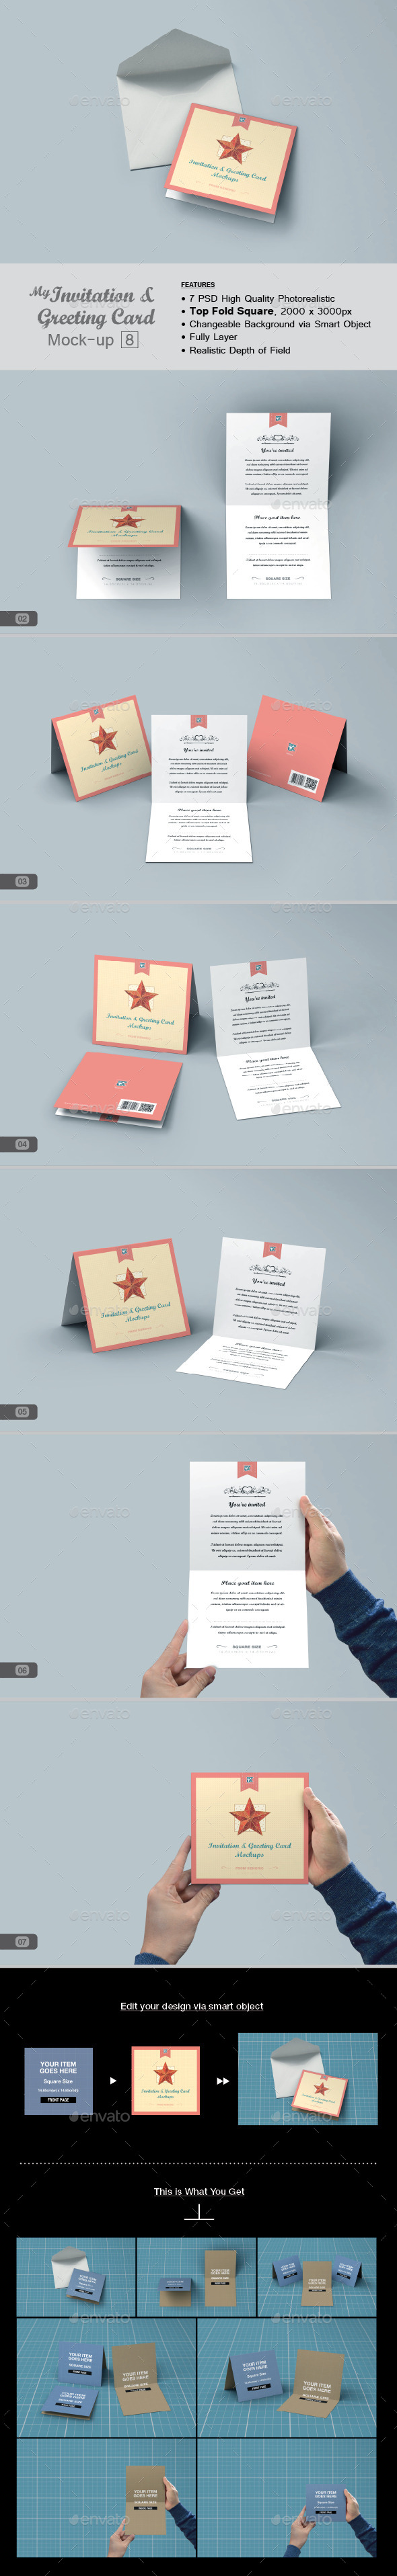 GraphicRiver myGreeting Card Mock-up v8 11587173